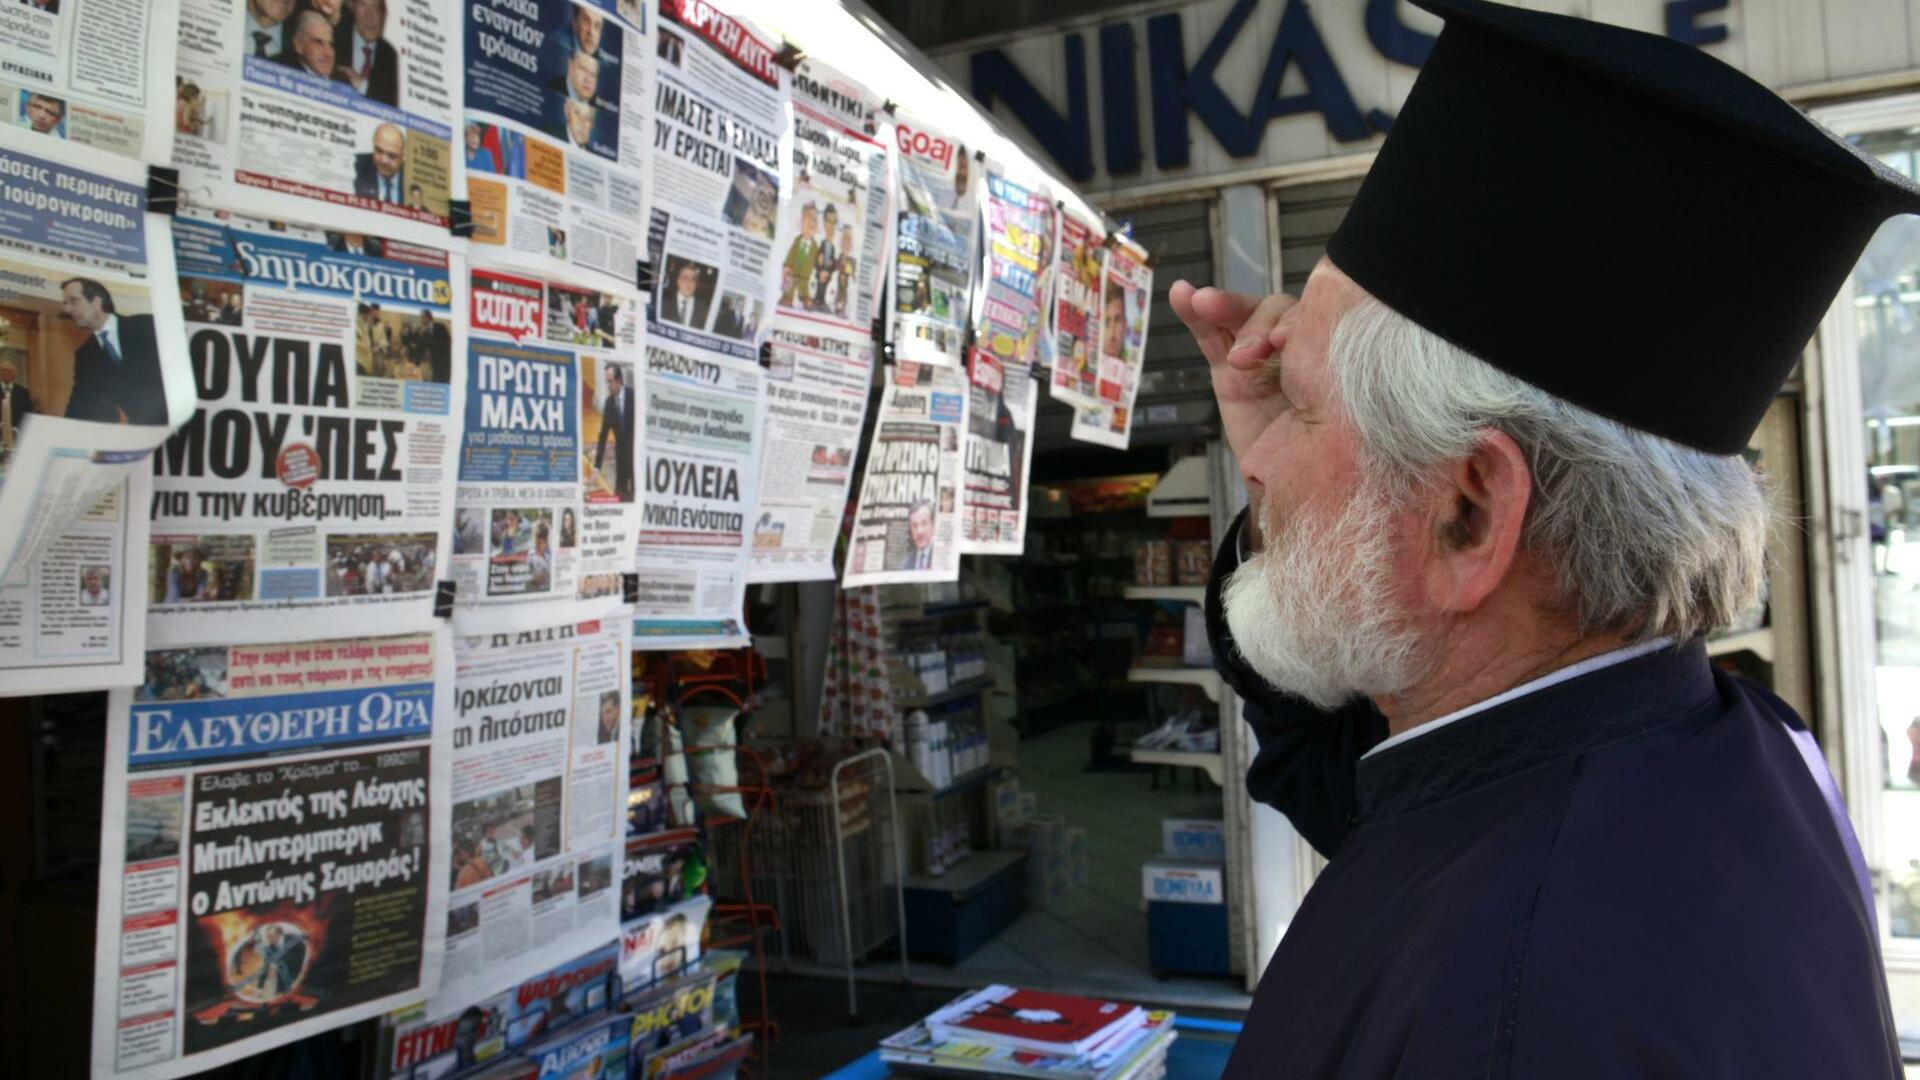 orthodoxer Priester Quelle: REUTERS